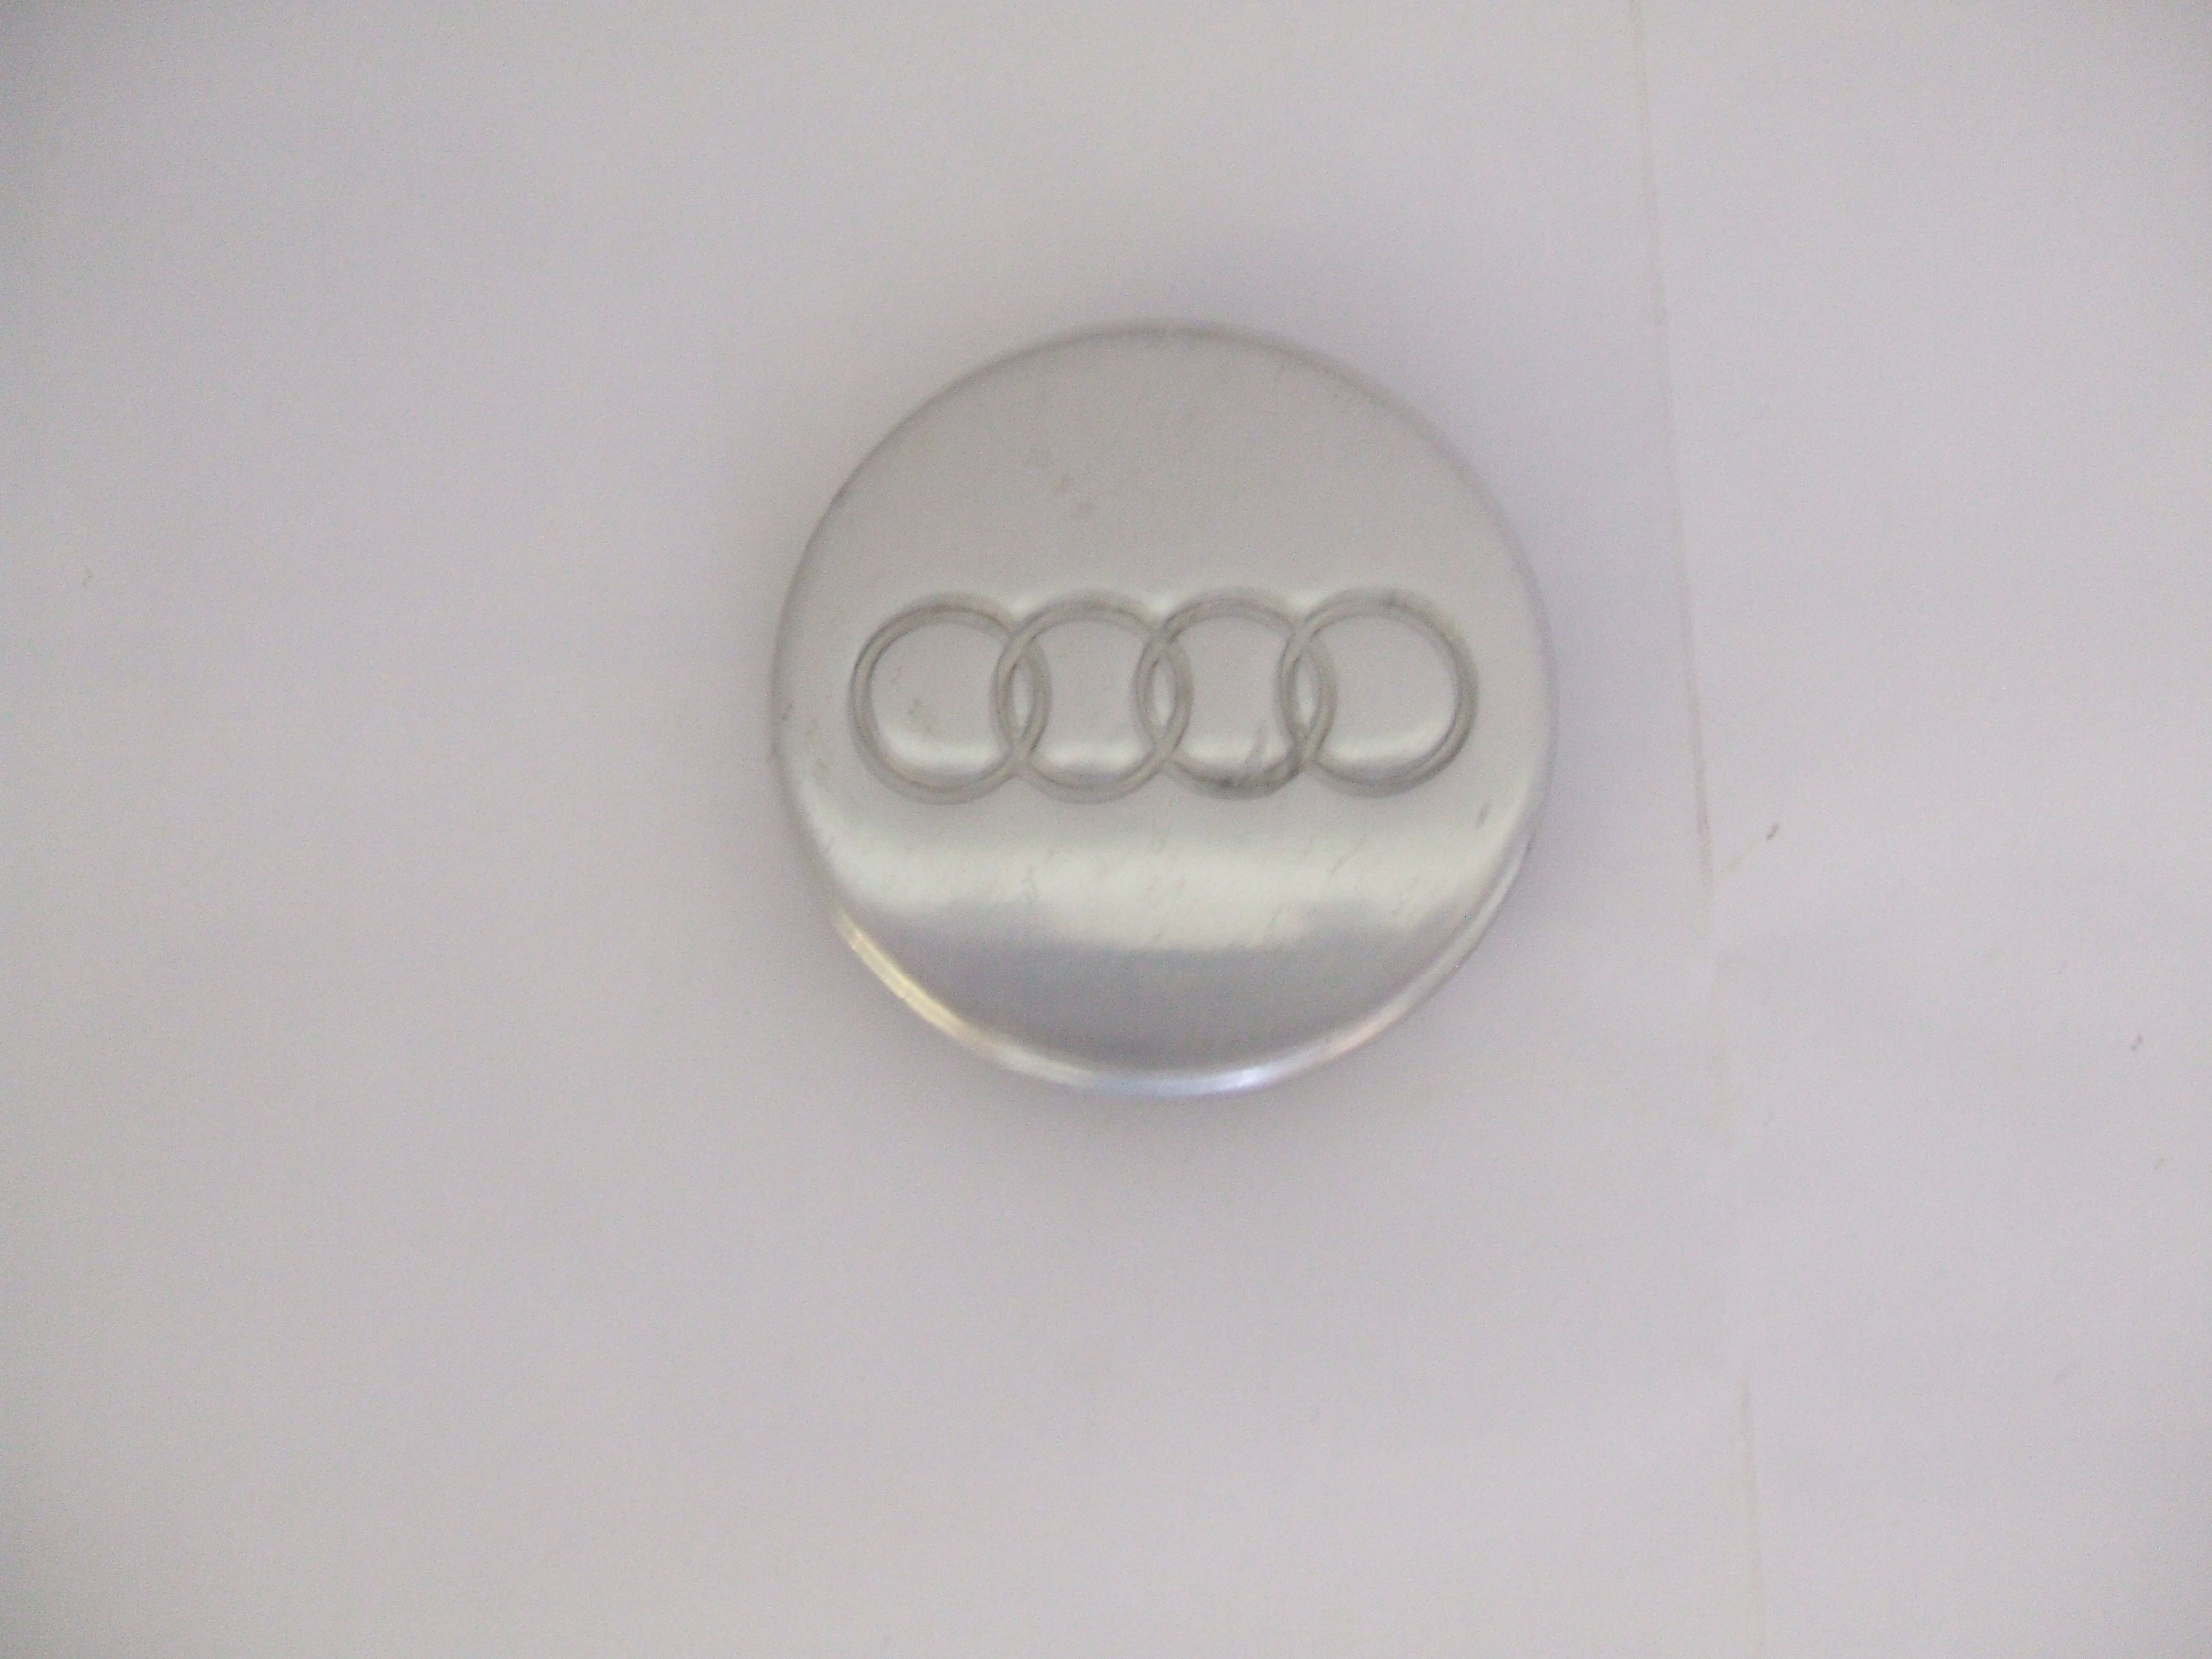 Audi A8 TT 97-03 Polished Center Cap 58712 P/N 400601170A